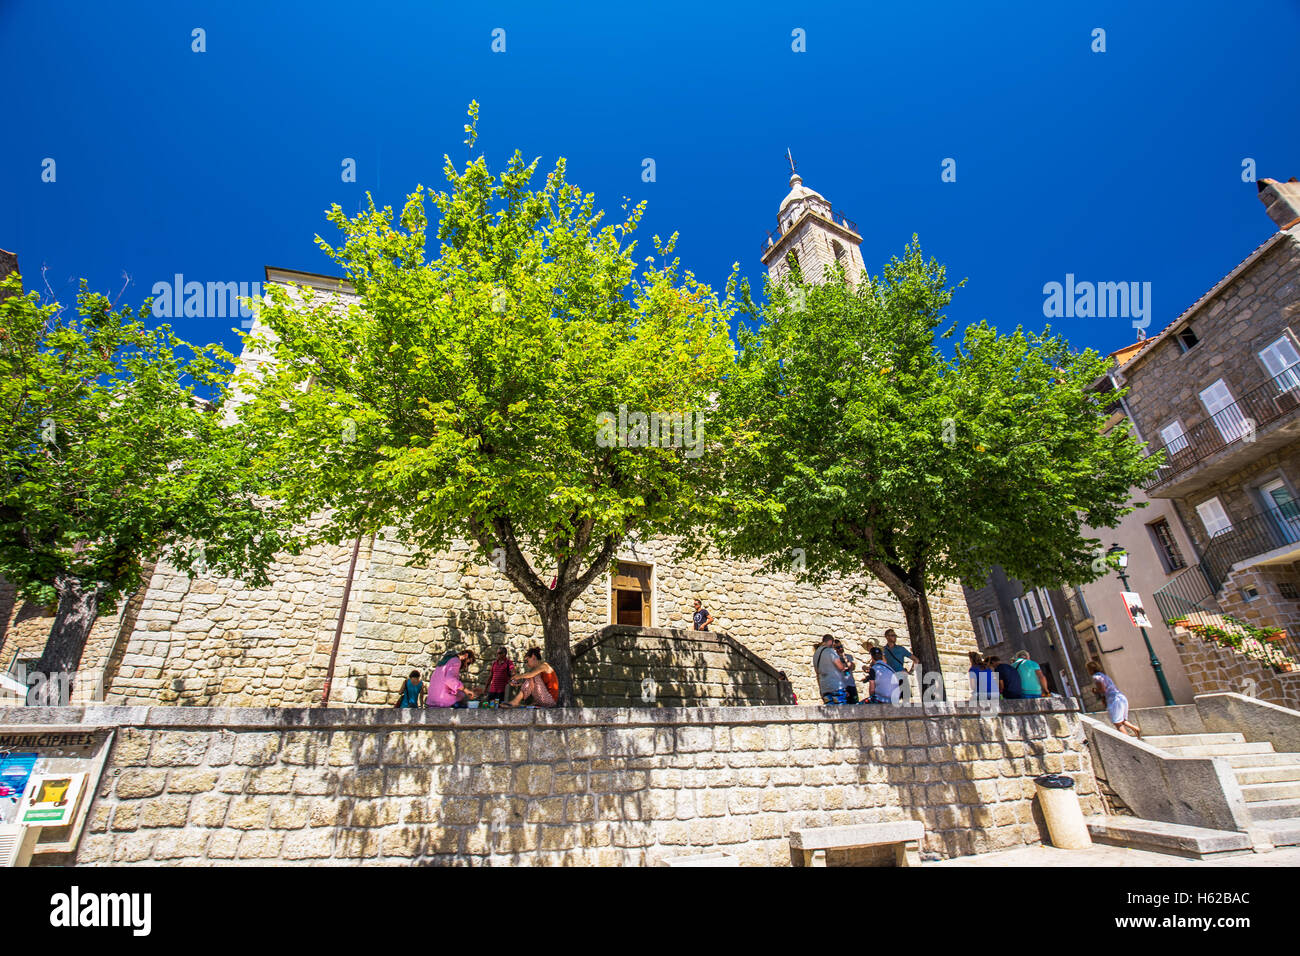 Sainte Maria church in the old city center of Sartene town, Corsica, France, Europe. - Stock Image